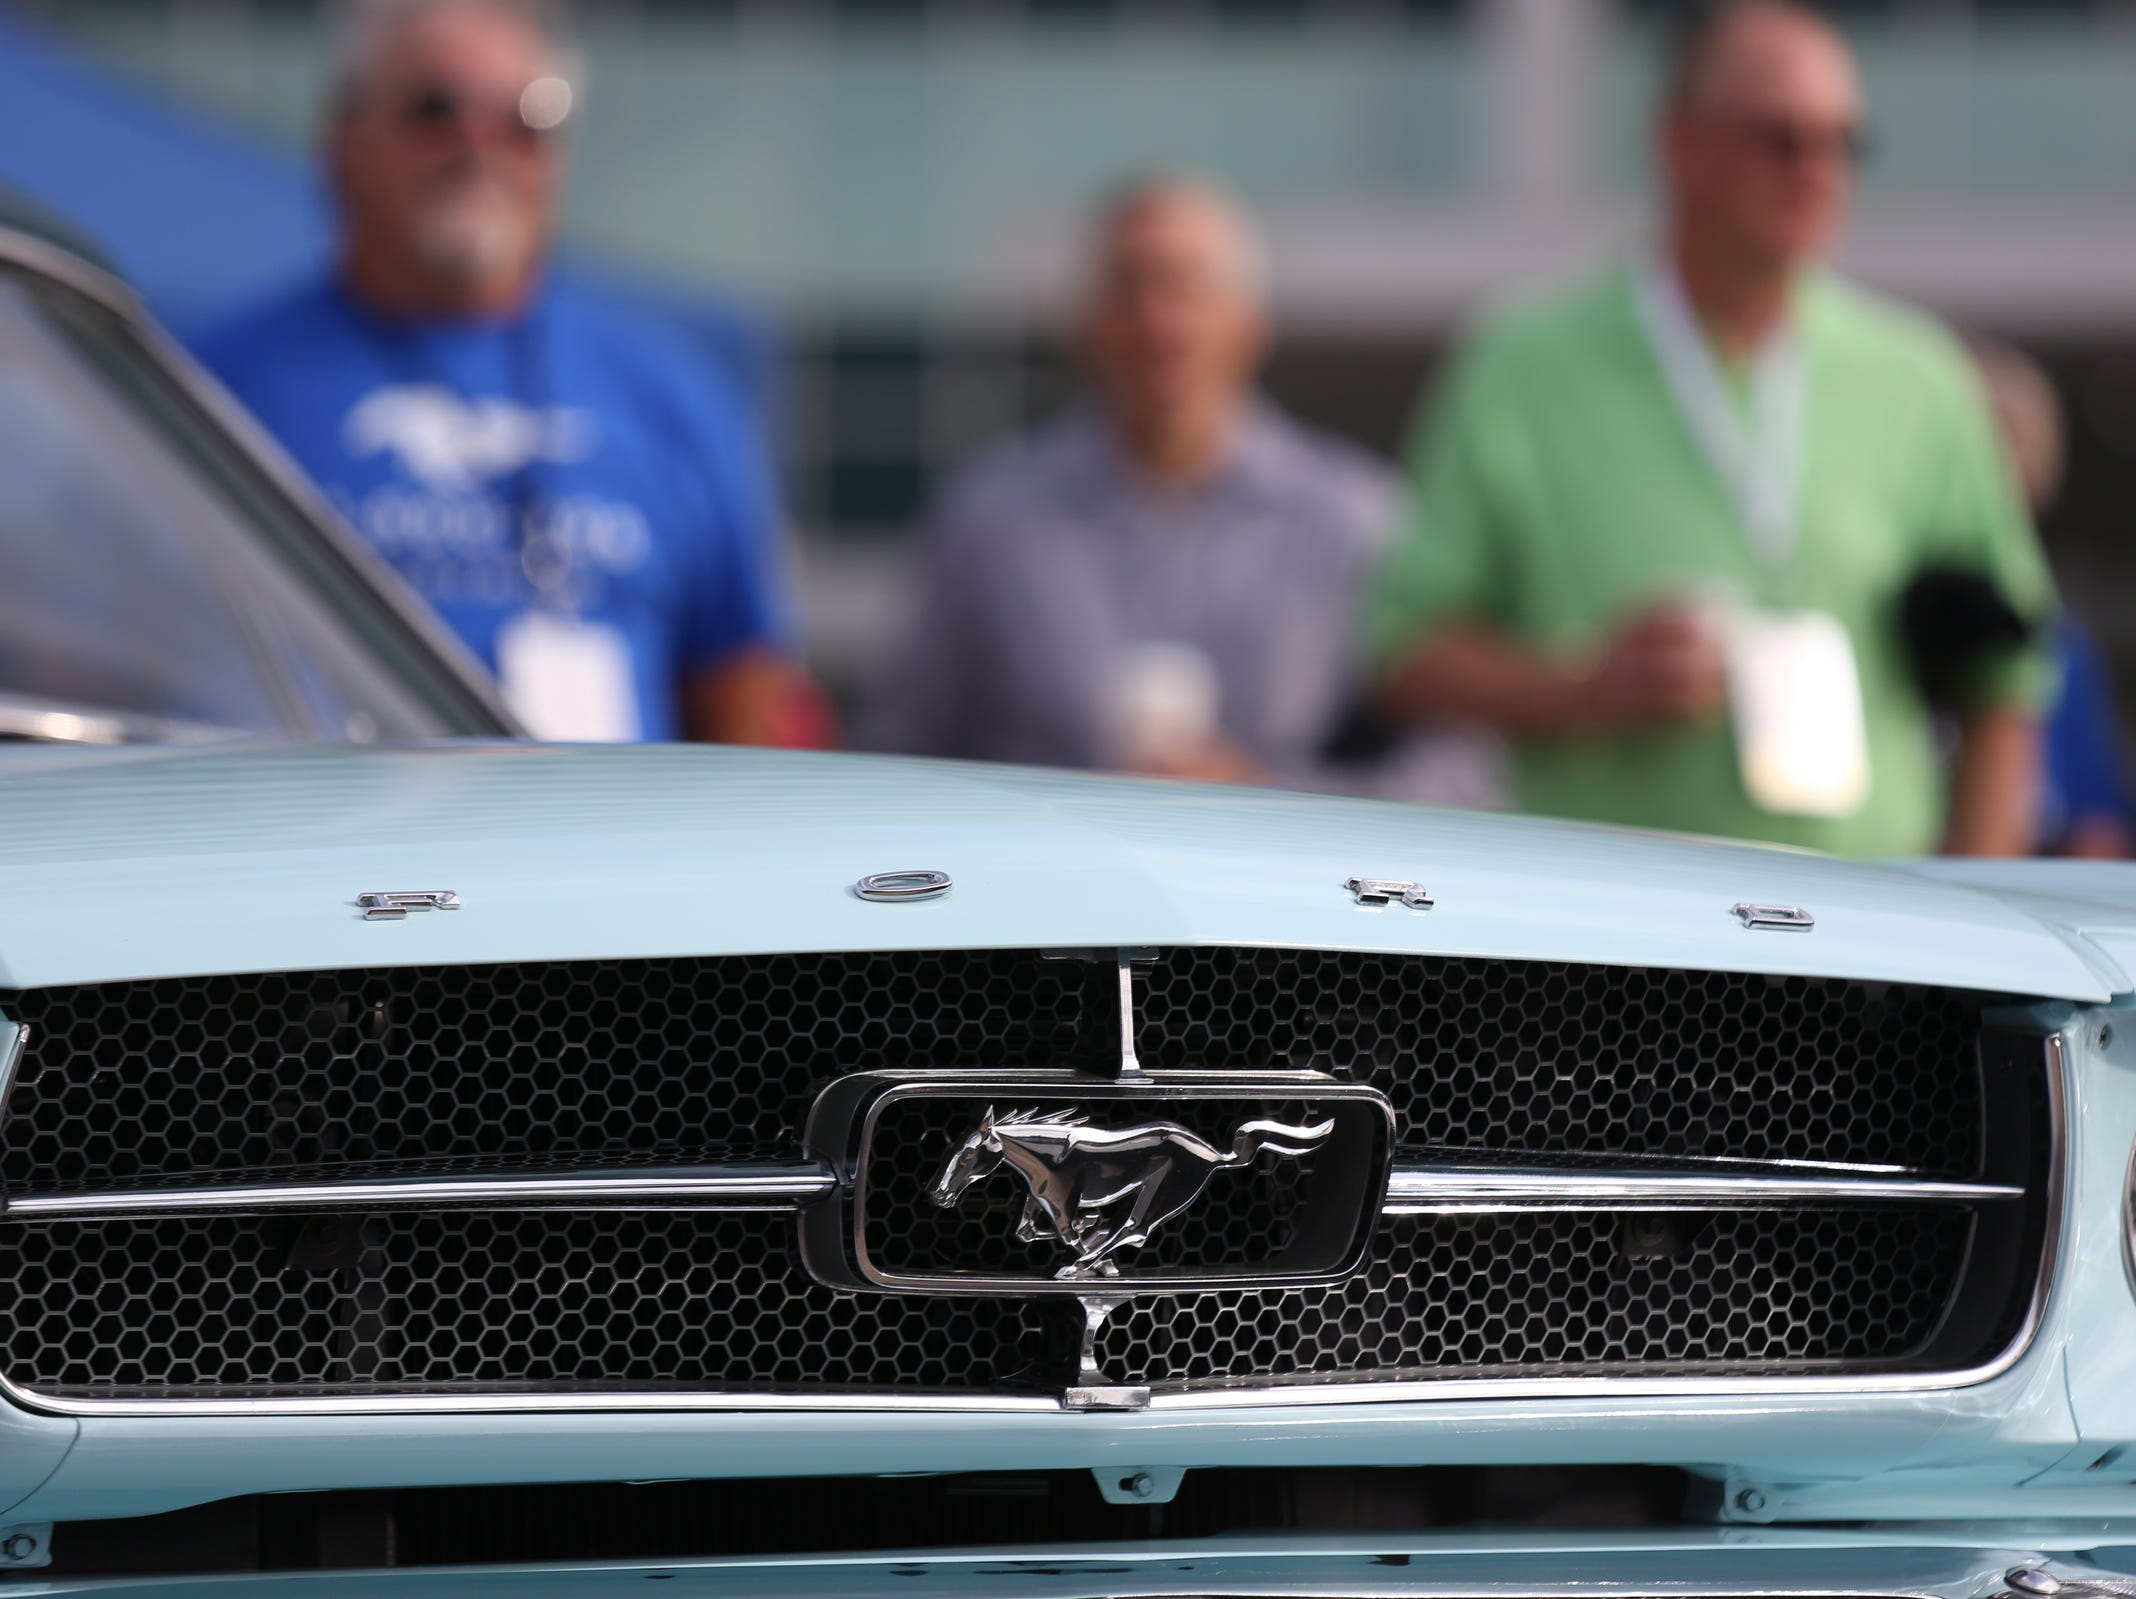 The original grill on Gail Wise's 1964 Ford Mustang seen during a Ford event celebrating the 10,000,000 Mustang built at the Ford Motor Company World Headquarters in Dearborn on Wed., Aug 8, 2018.